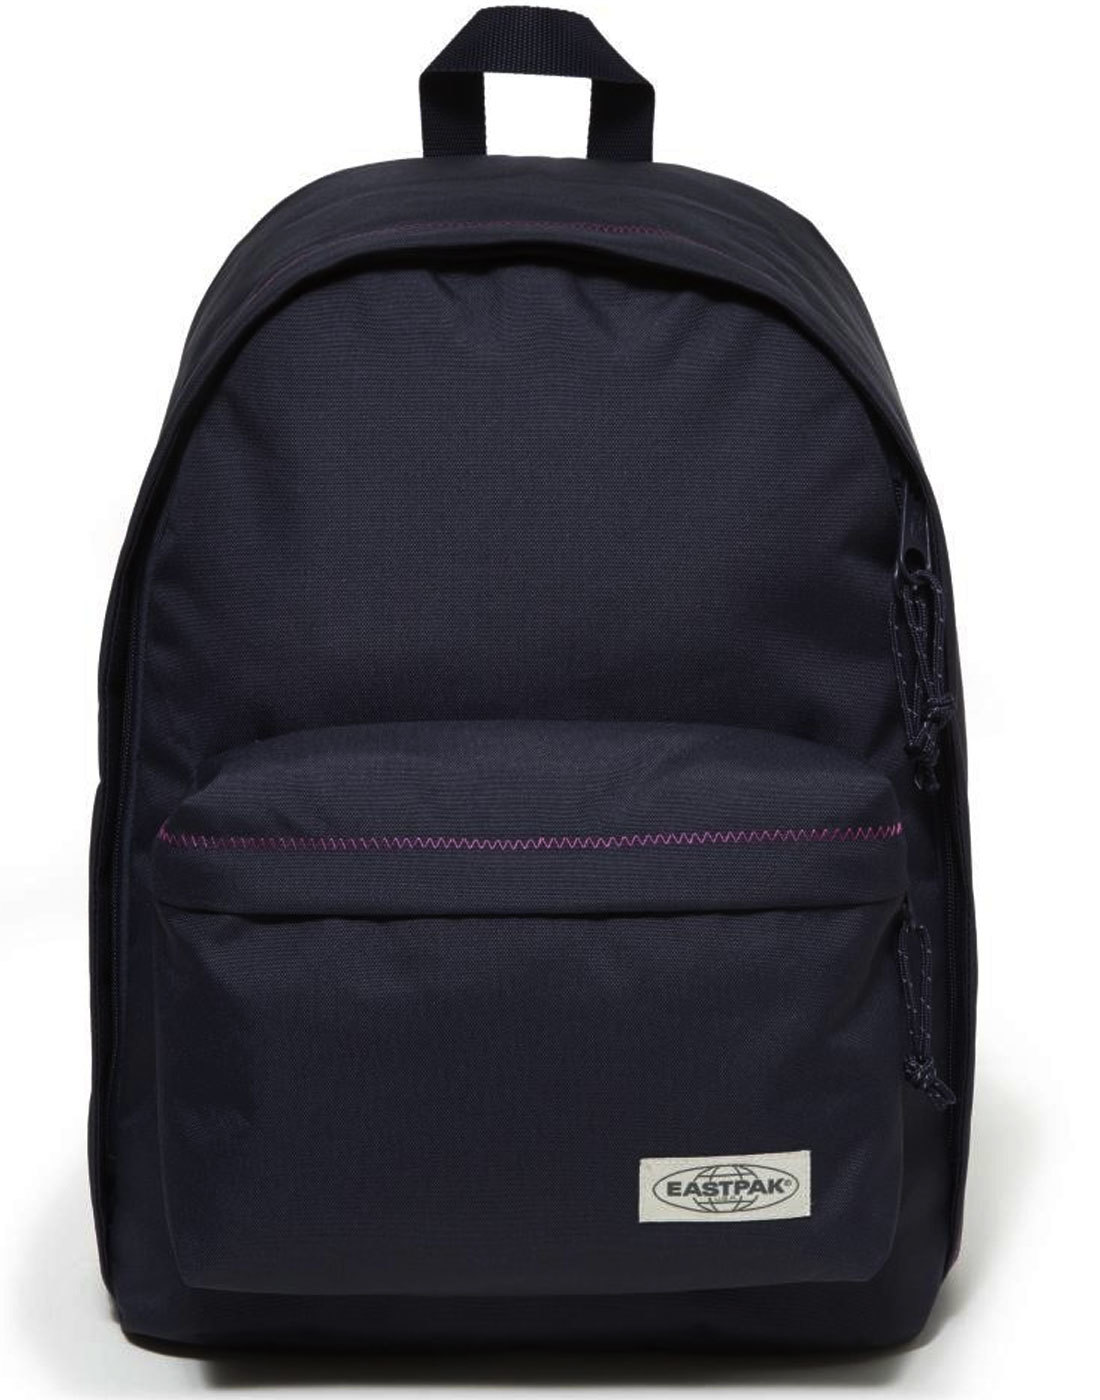 EASTPAK Out Of Office Retro Mod Navy Stitched Laptop Backpack